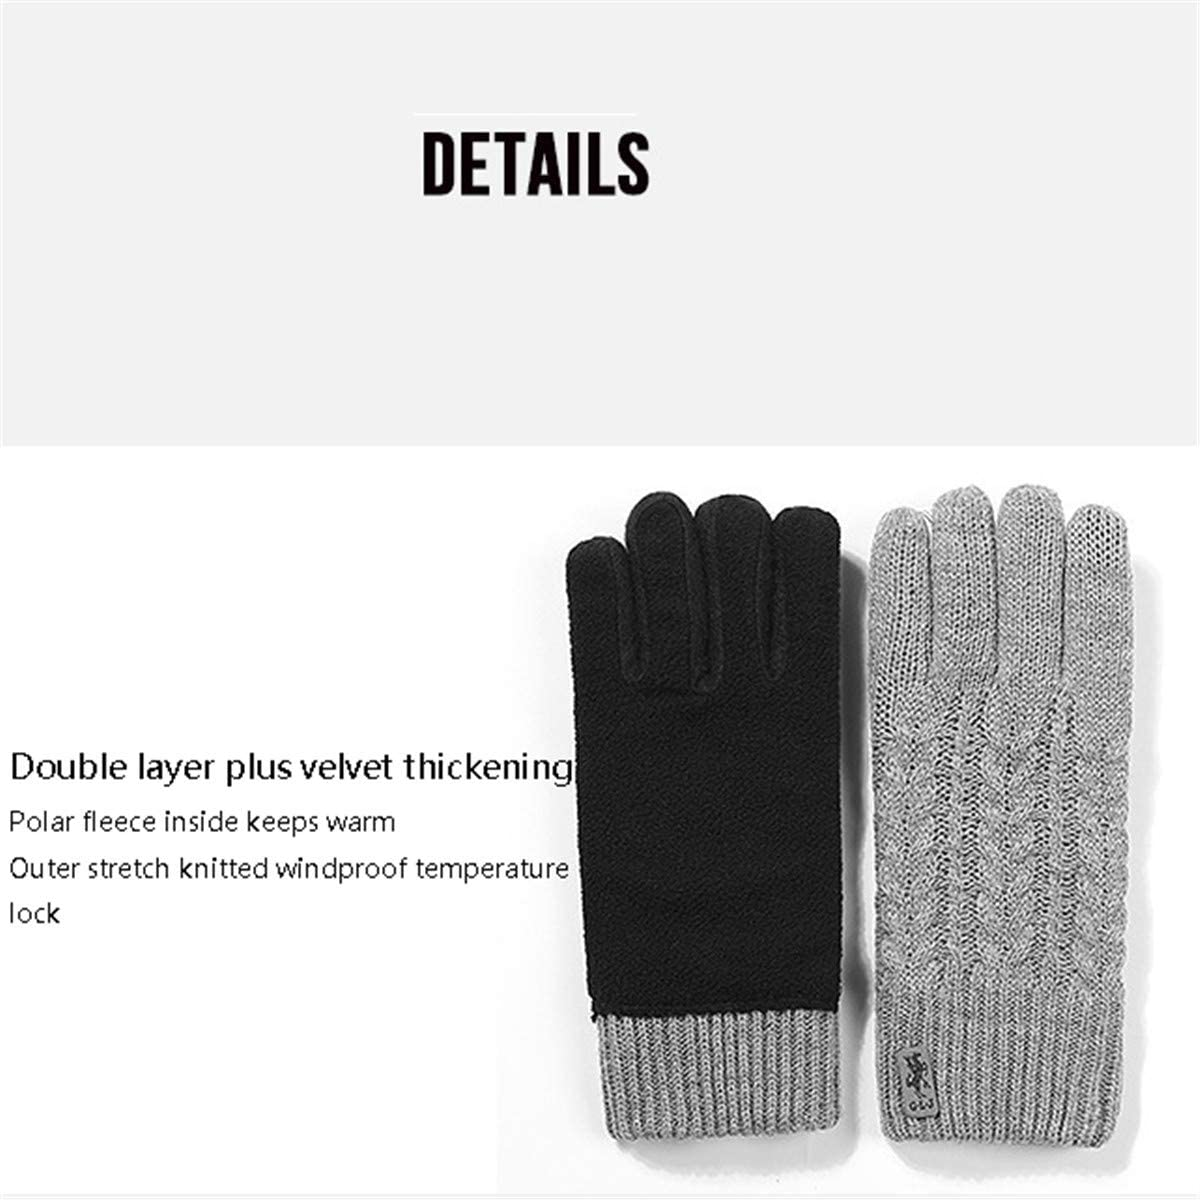 HIMFL Knitted Touch Screen Gloves Autumn and Winter Ladies Gloves Outdoor Double Thickening Plus Velvet Windproof Warmth Play Mobile,Dark Gray